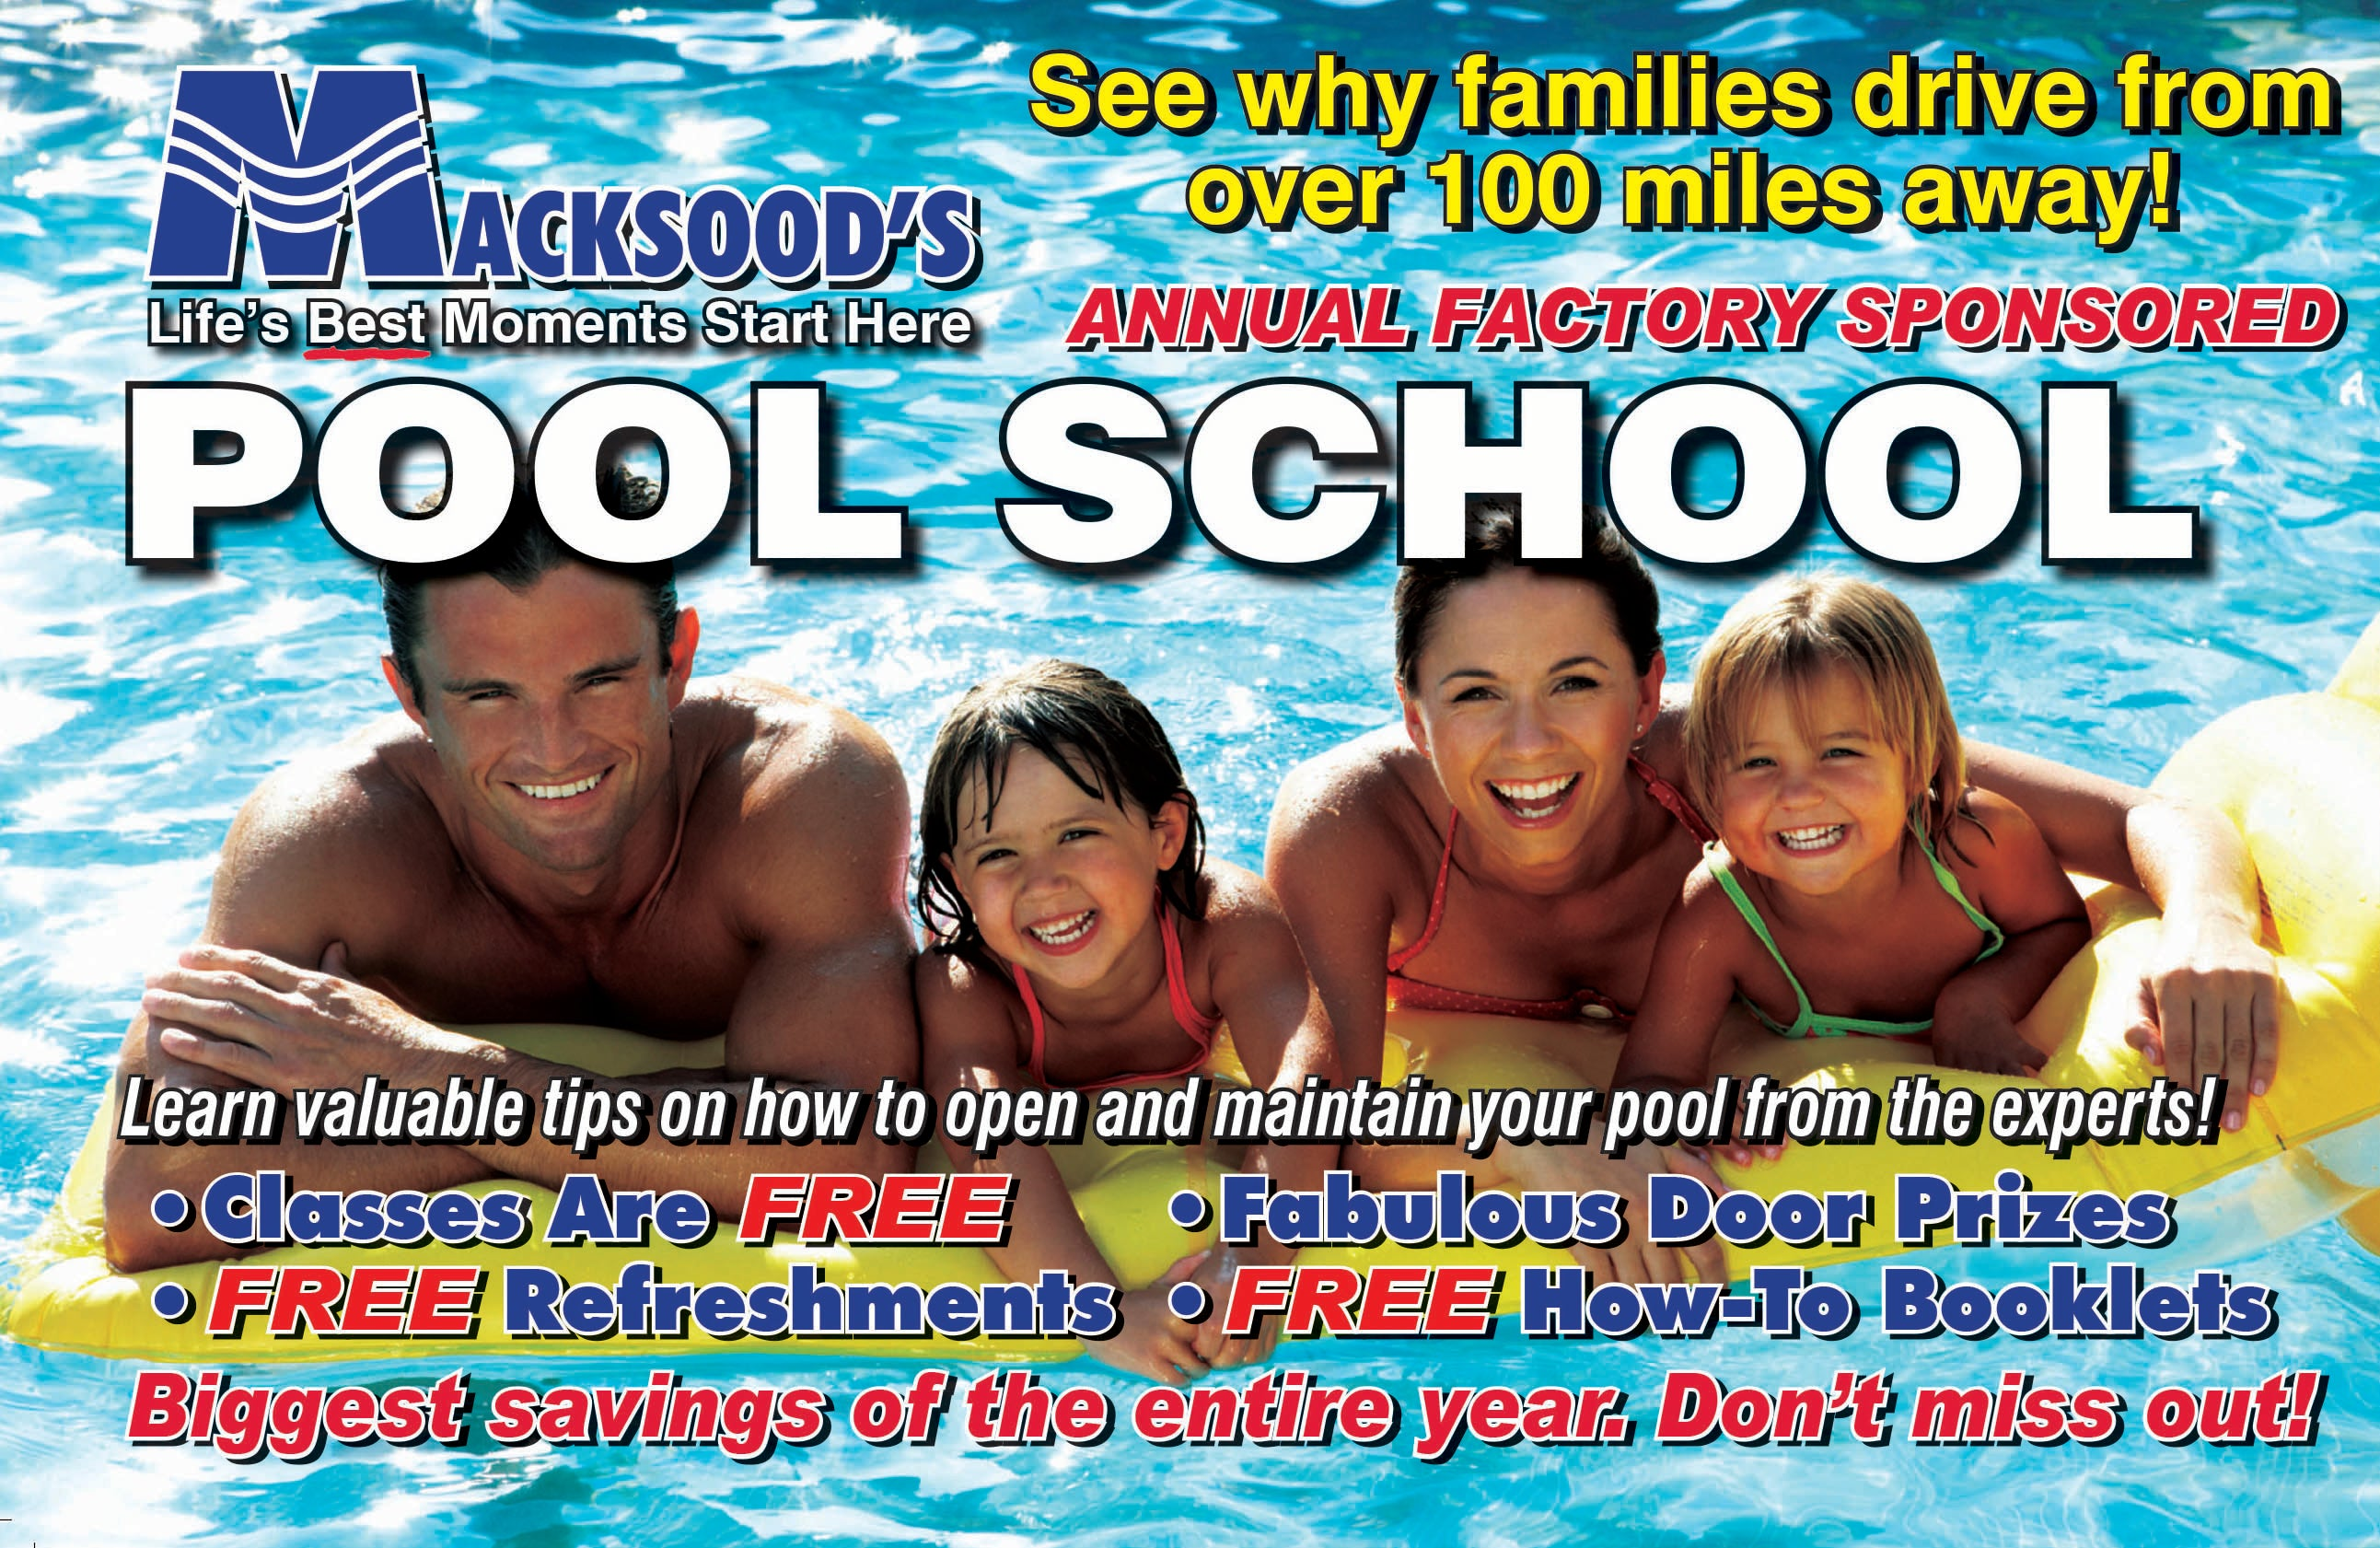 View the Pool School Flyer Here!